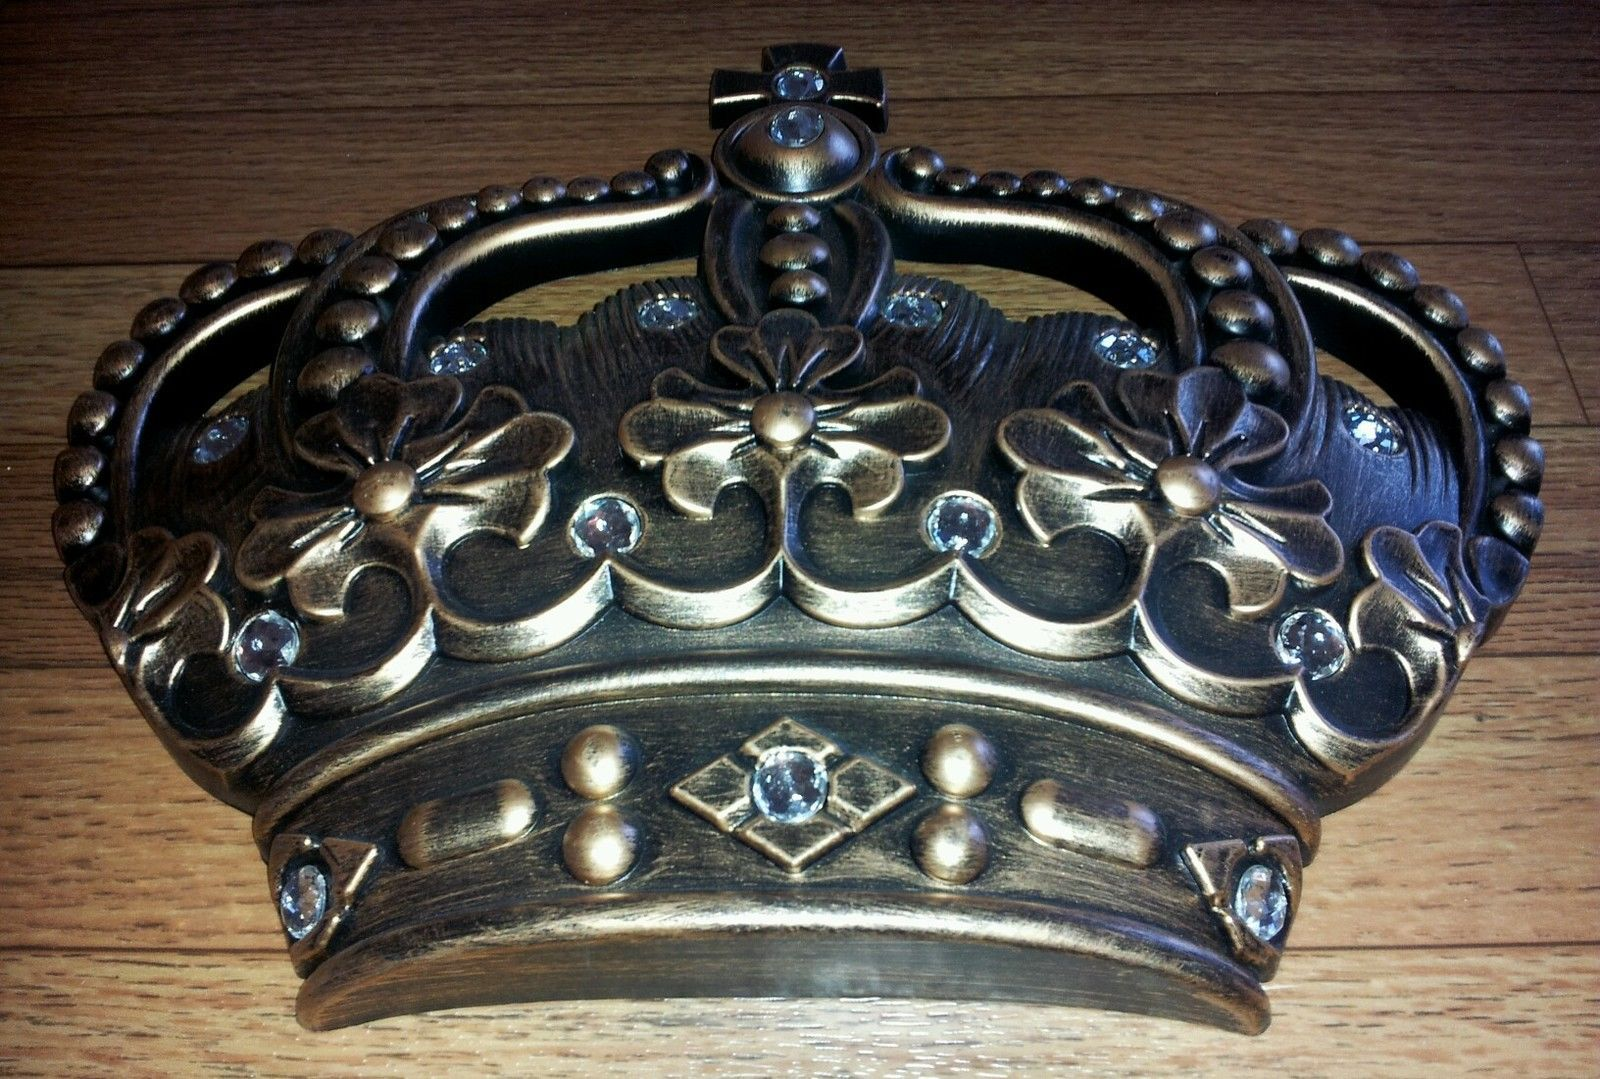 Prince Crown Wall Decoration : New royal jeweled antiqued gold crown wall plaque queen